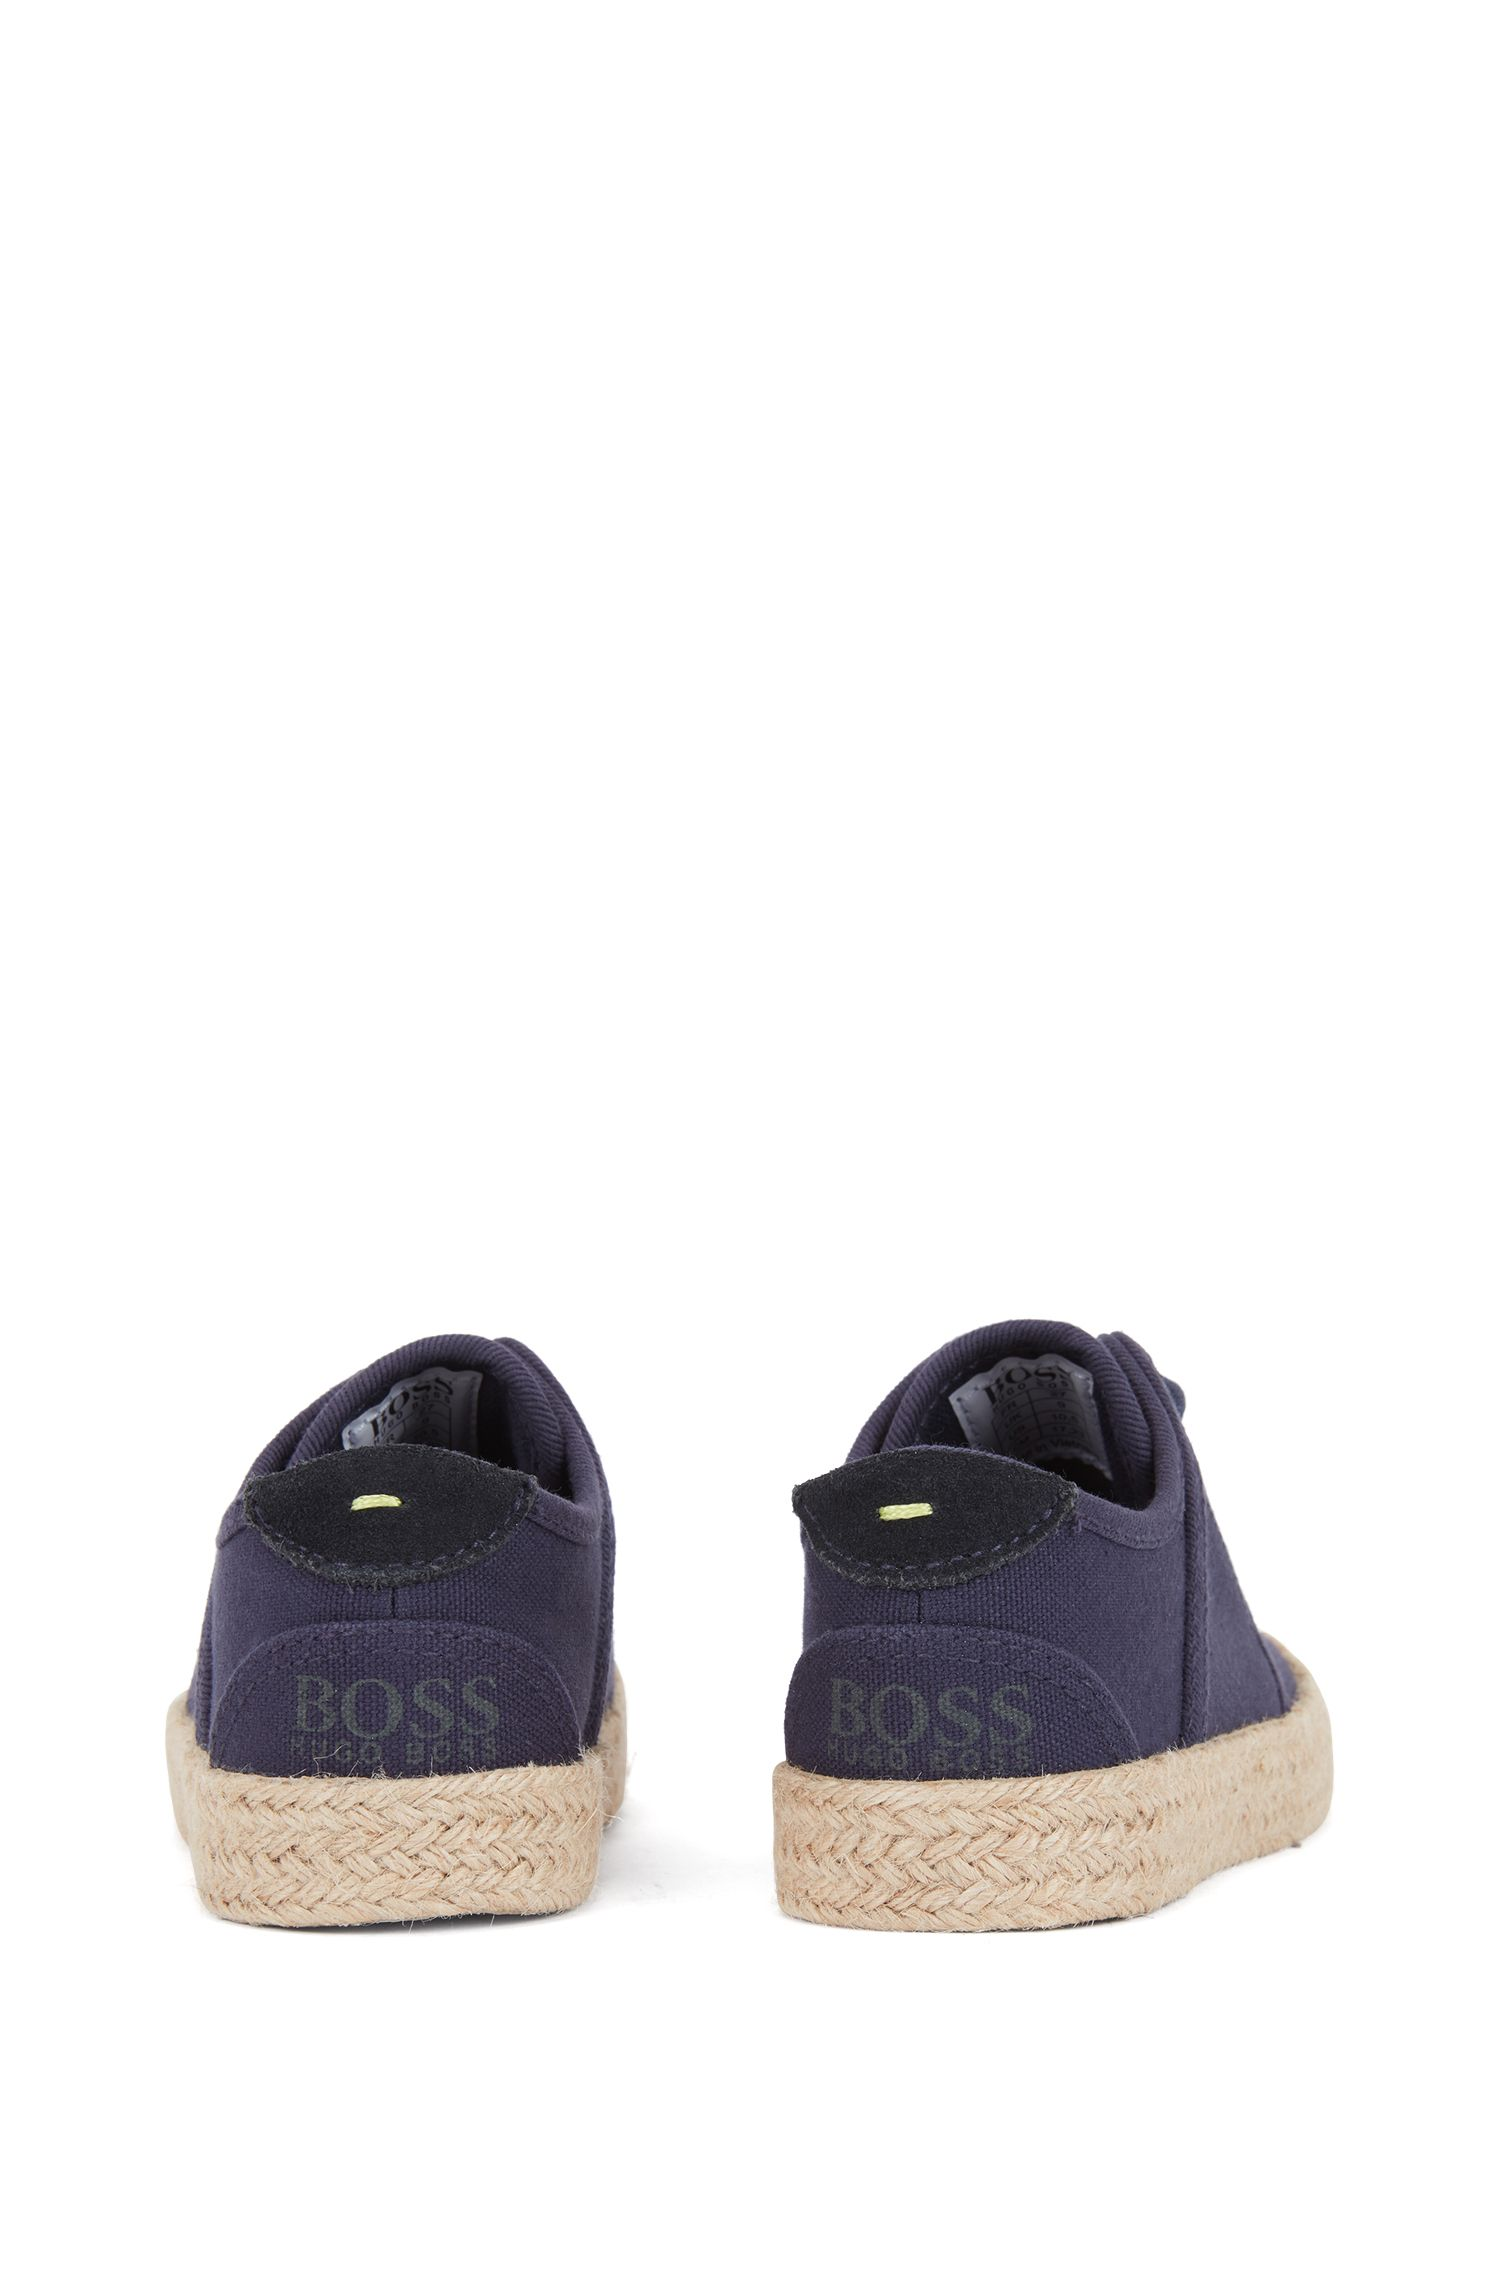 Kids' espadrille-style trainers in cotton canvas